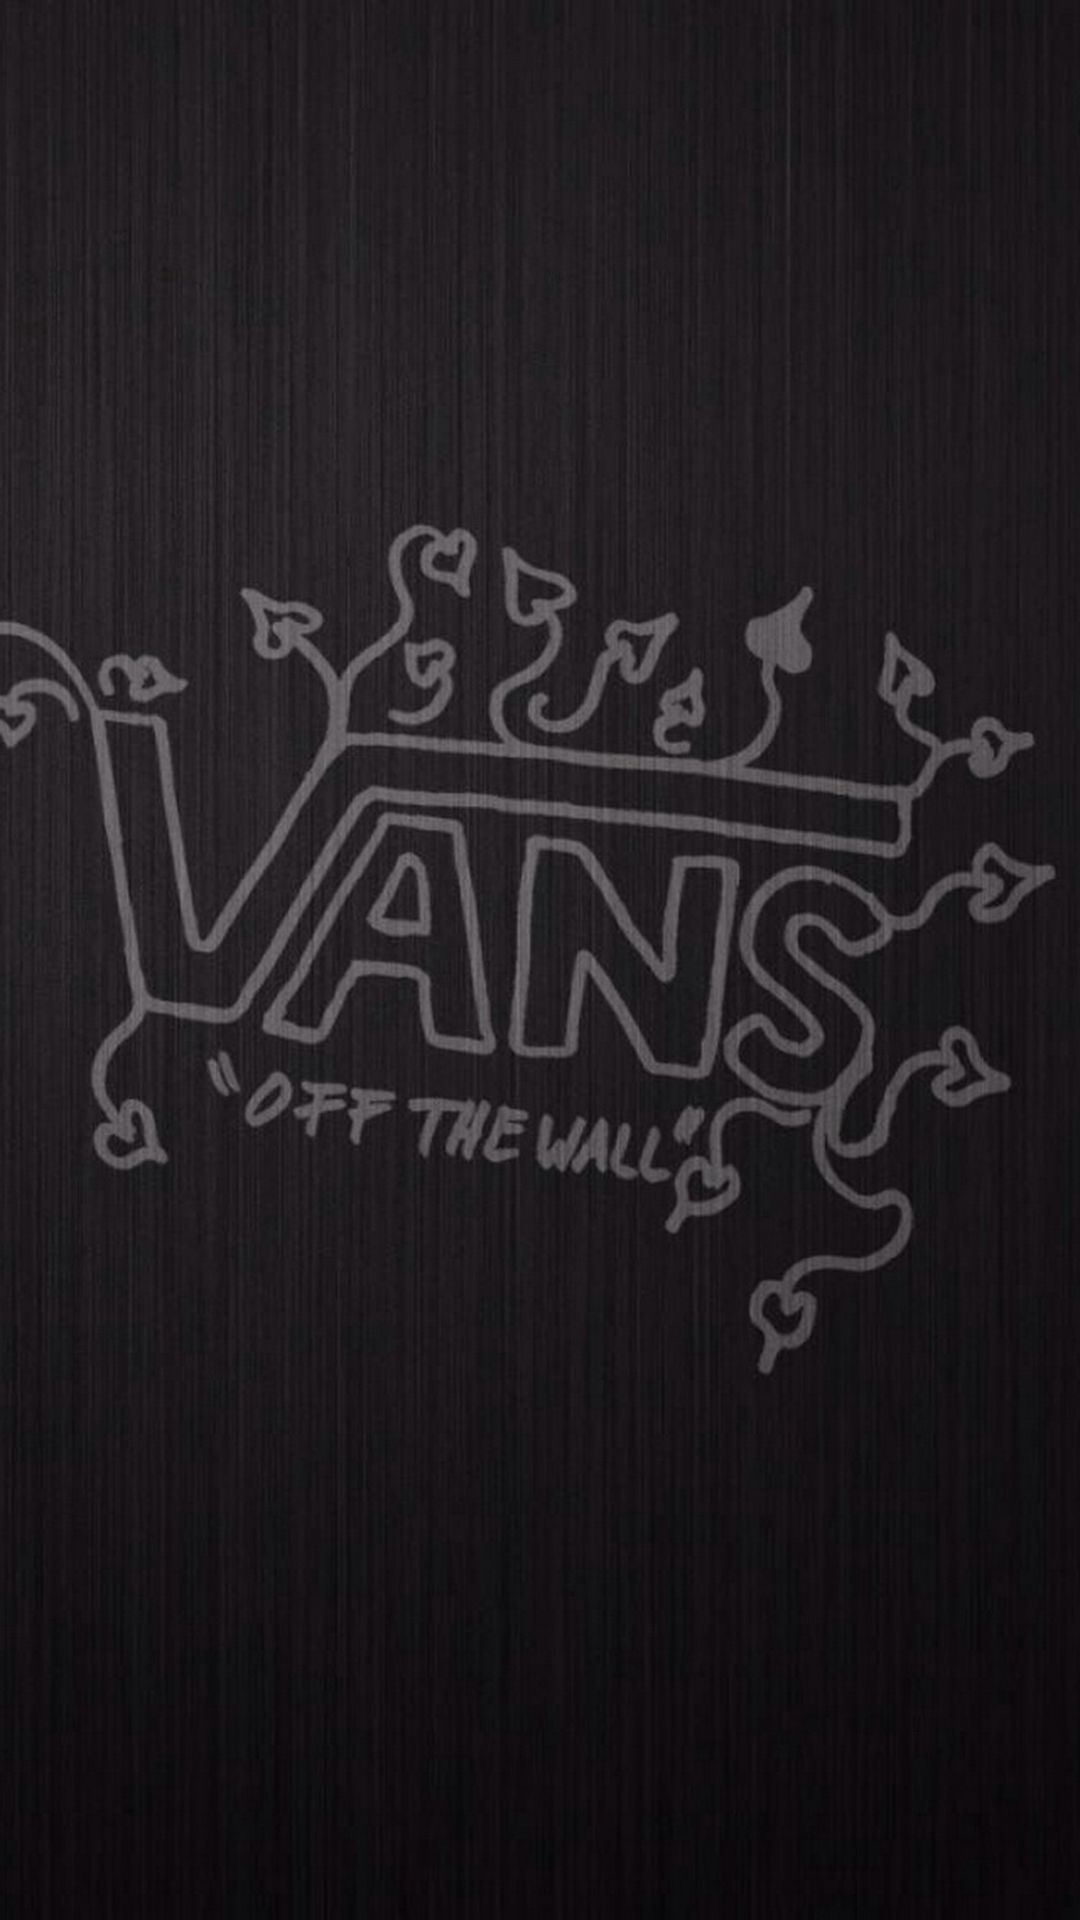 Vans Off The Wall Iphone 8 Wallpapers Iphone 5s Wallpaper